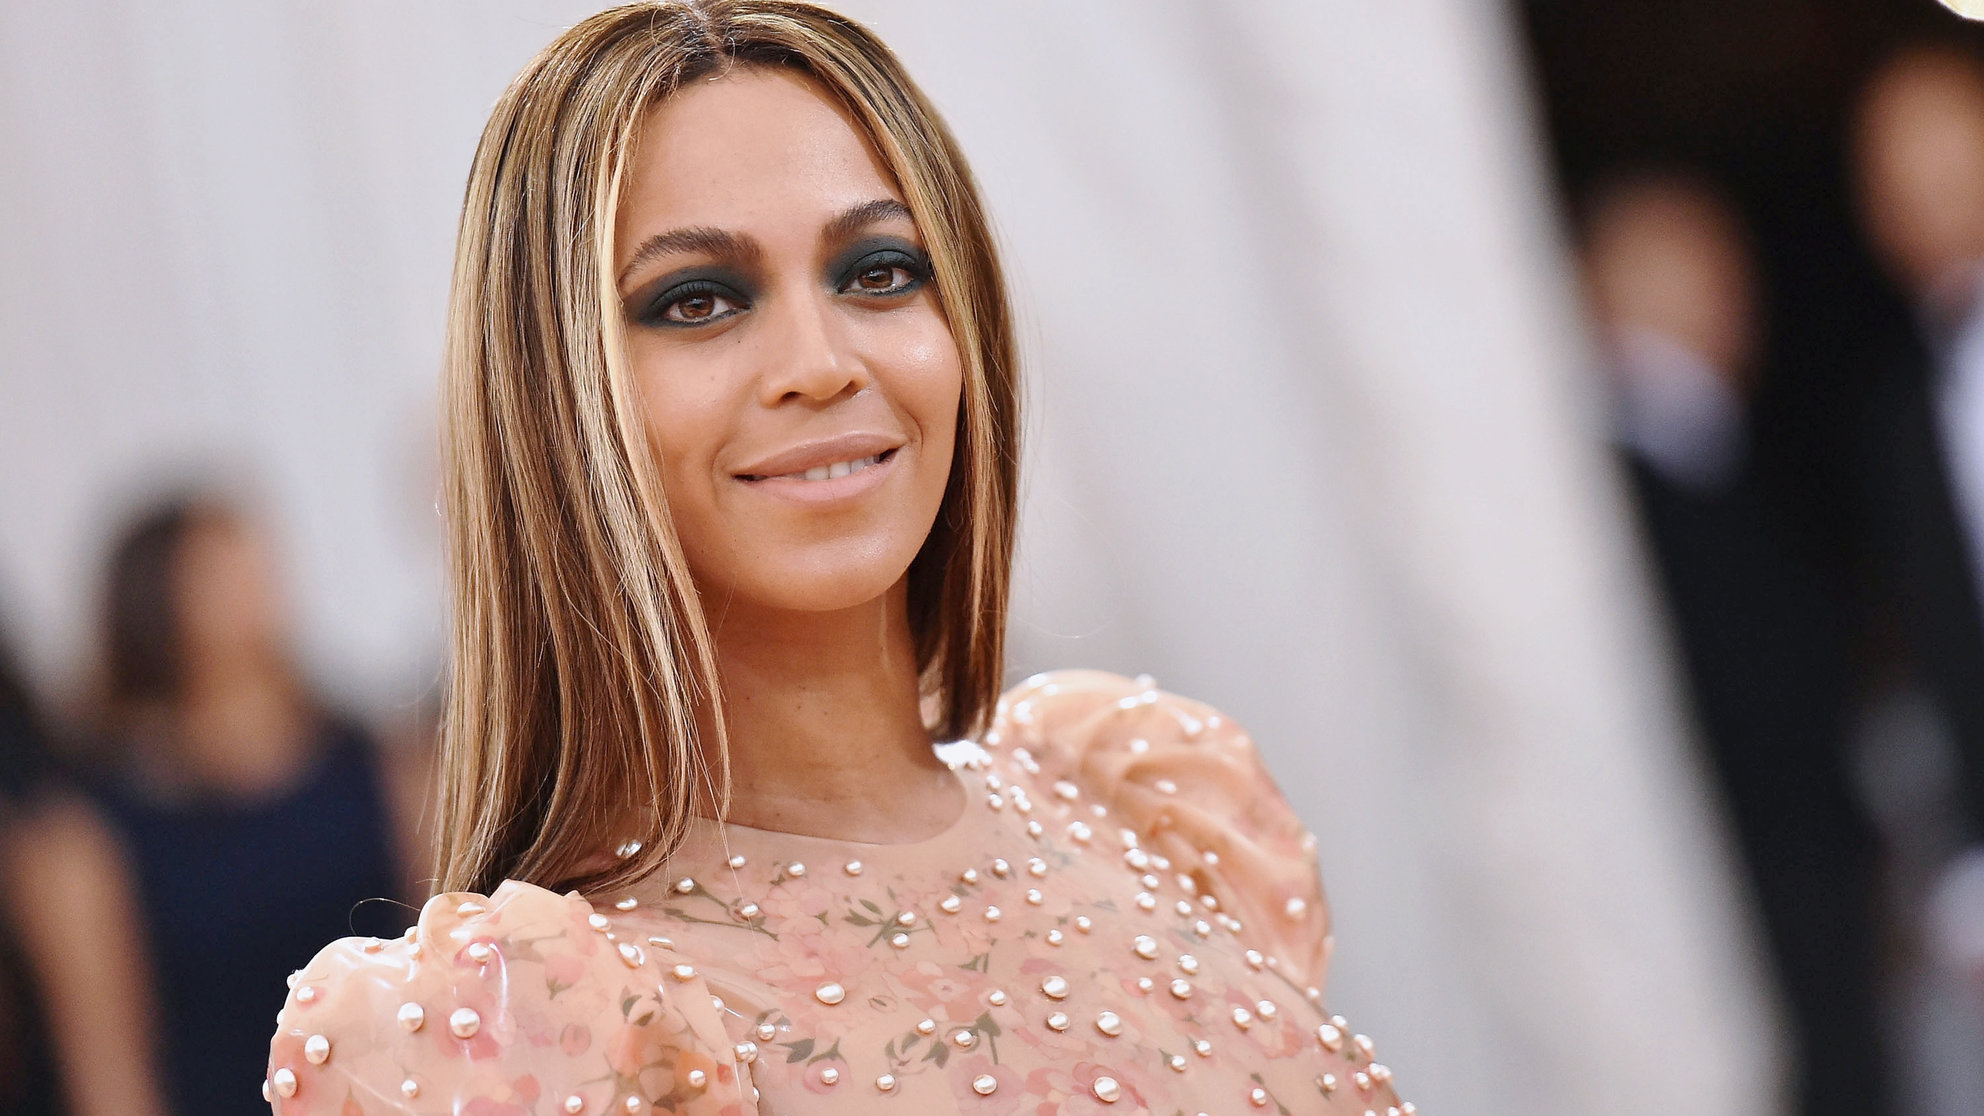 Beyoncé Wants You to Drink This Watermelon Water, But Is It Any Good for You?